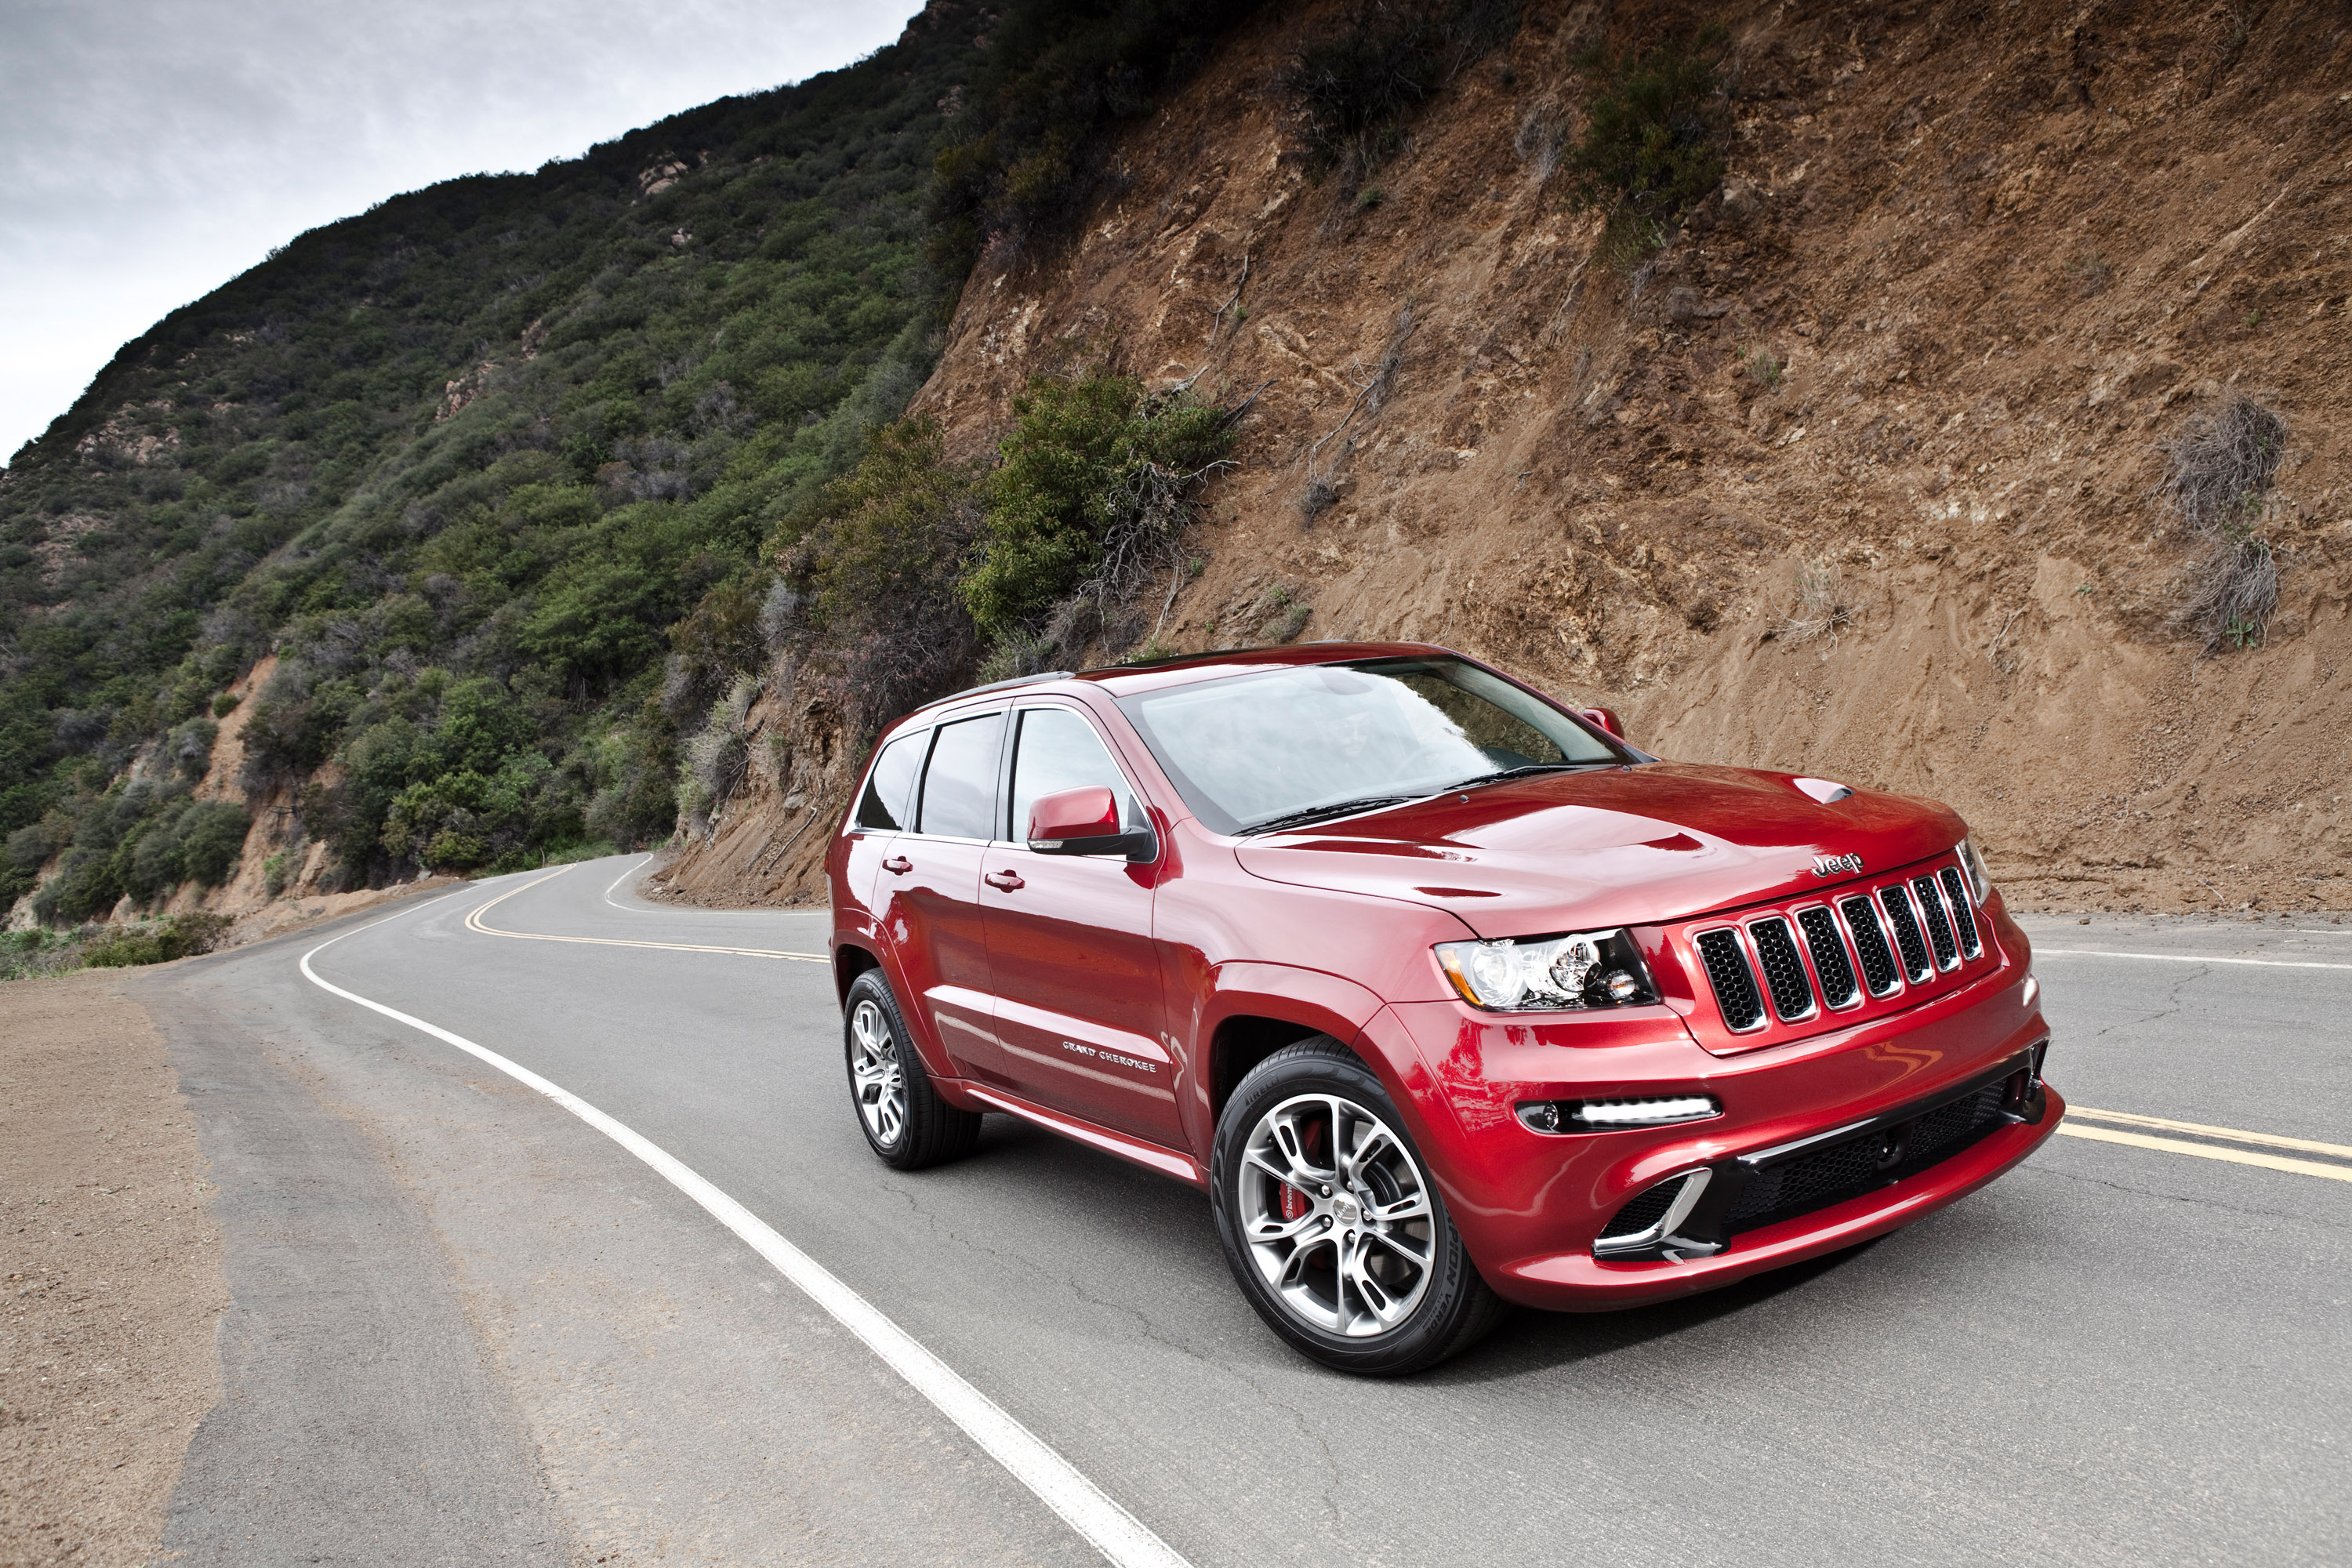 2012 jeep grand cherokee srt8 picture 53480. Black Bedroom Furniture Sets. Home Design Ideas